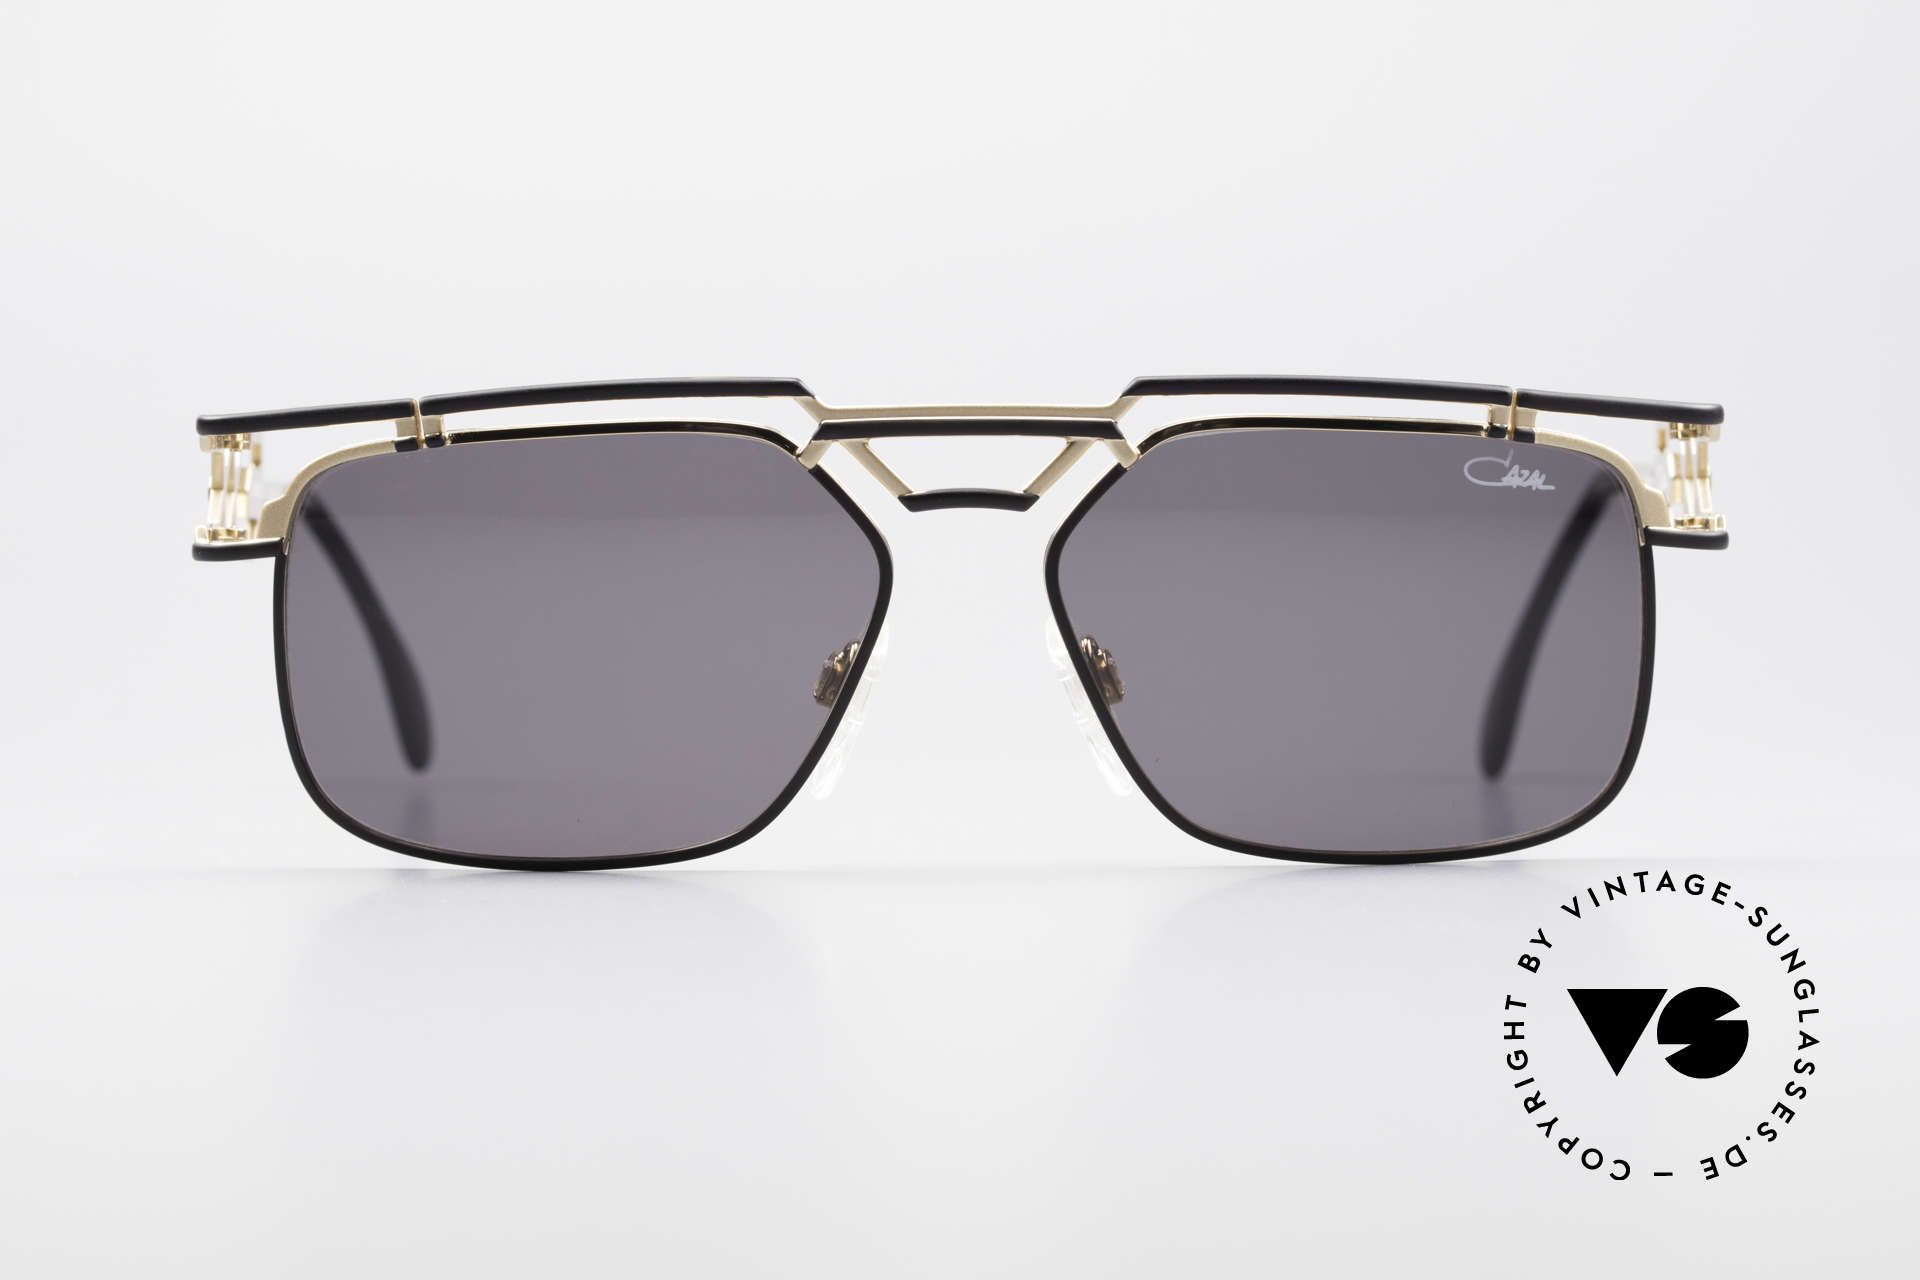 Cazal 973 90's Sunglasses Ladies Gents, phenomenal quality 'Made in Germany'- just monolithic, Made for Men and Women